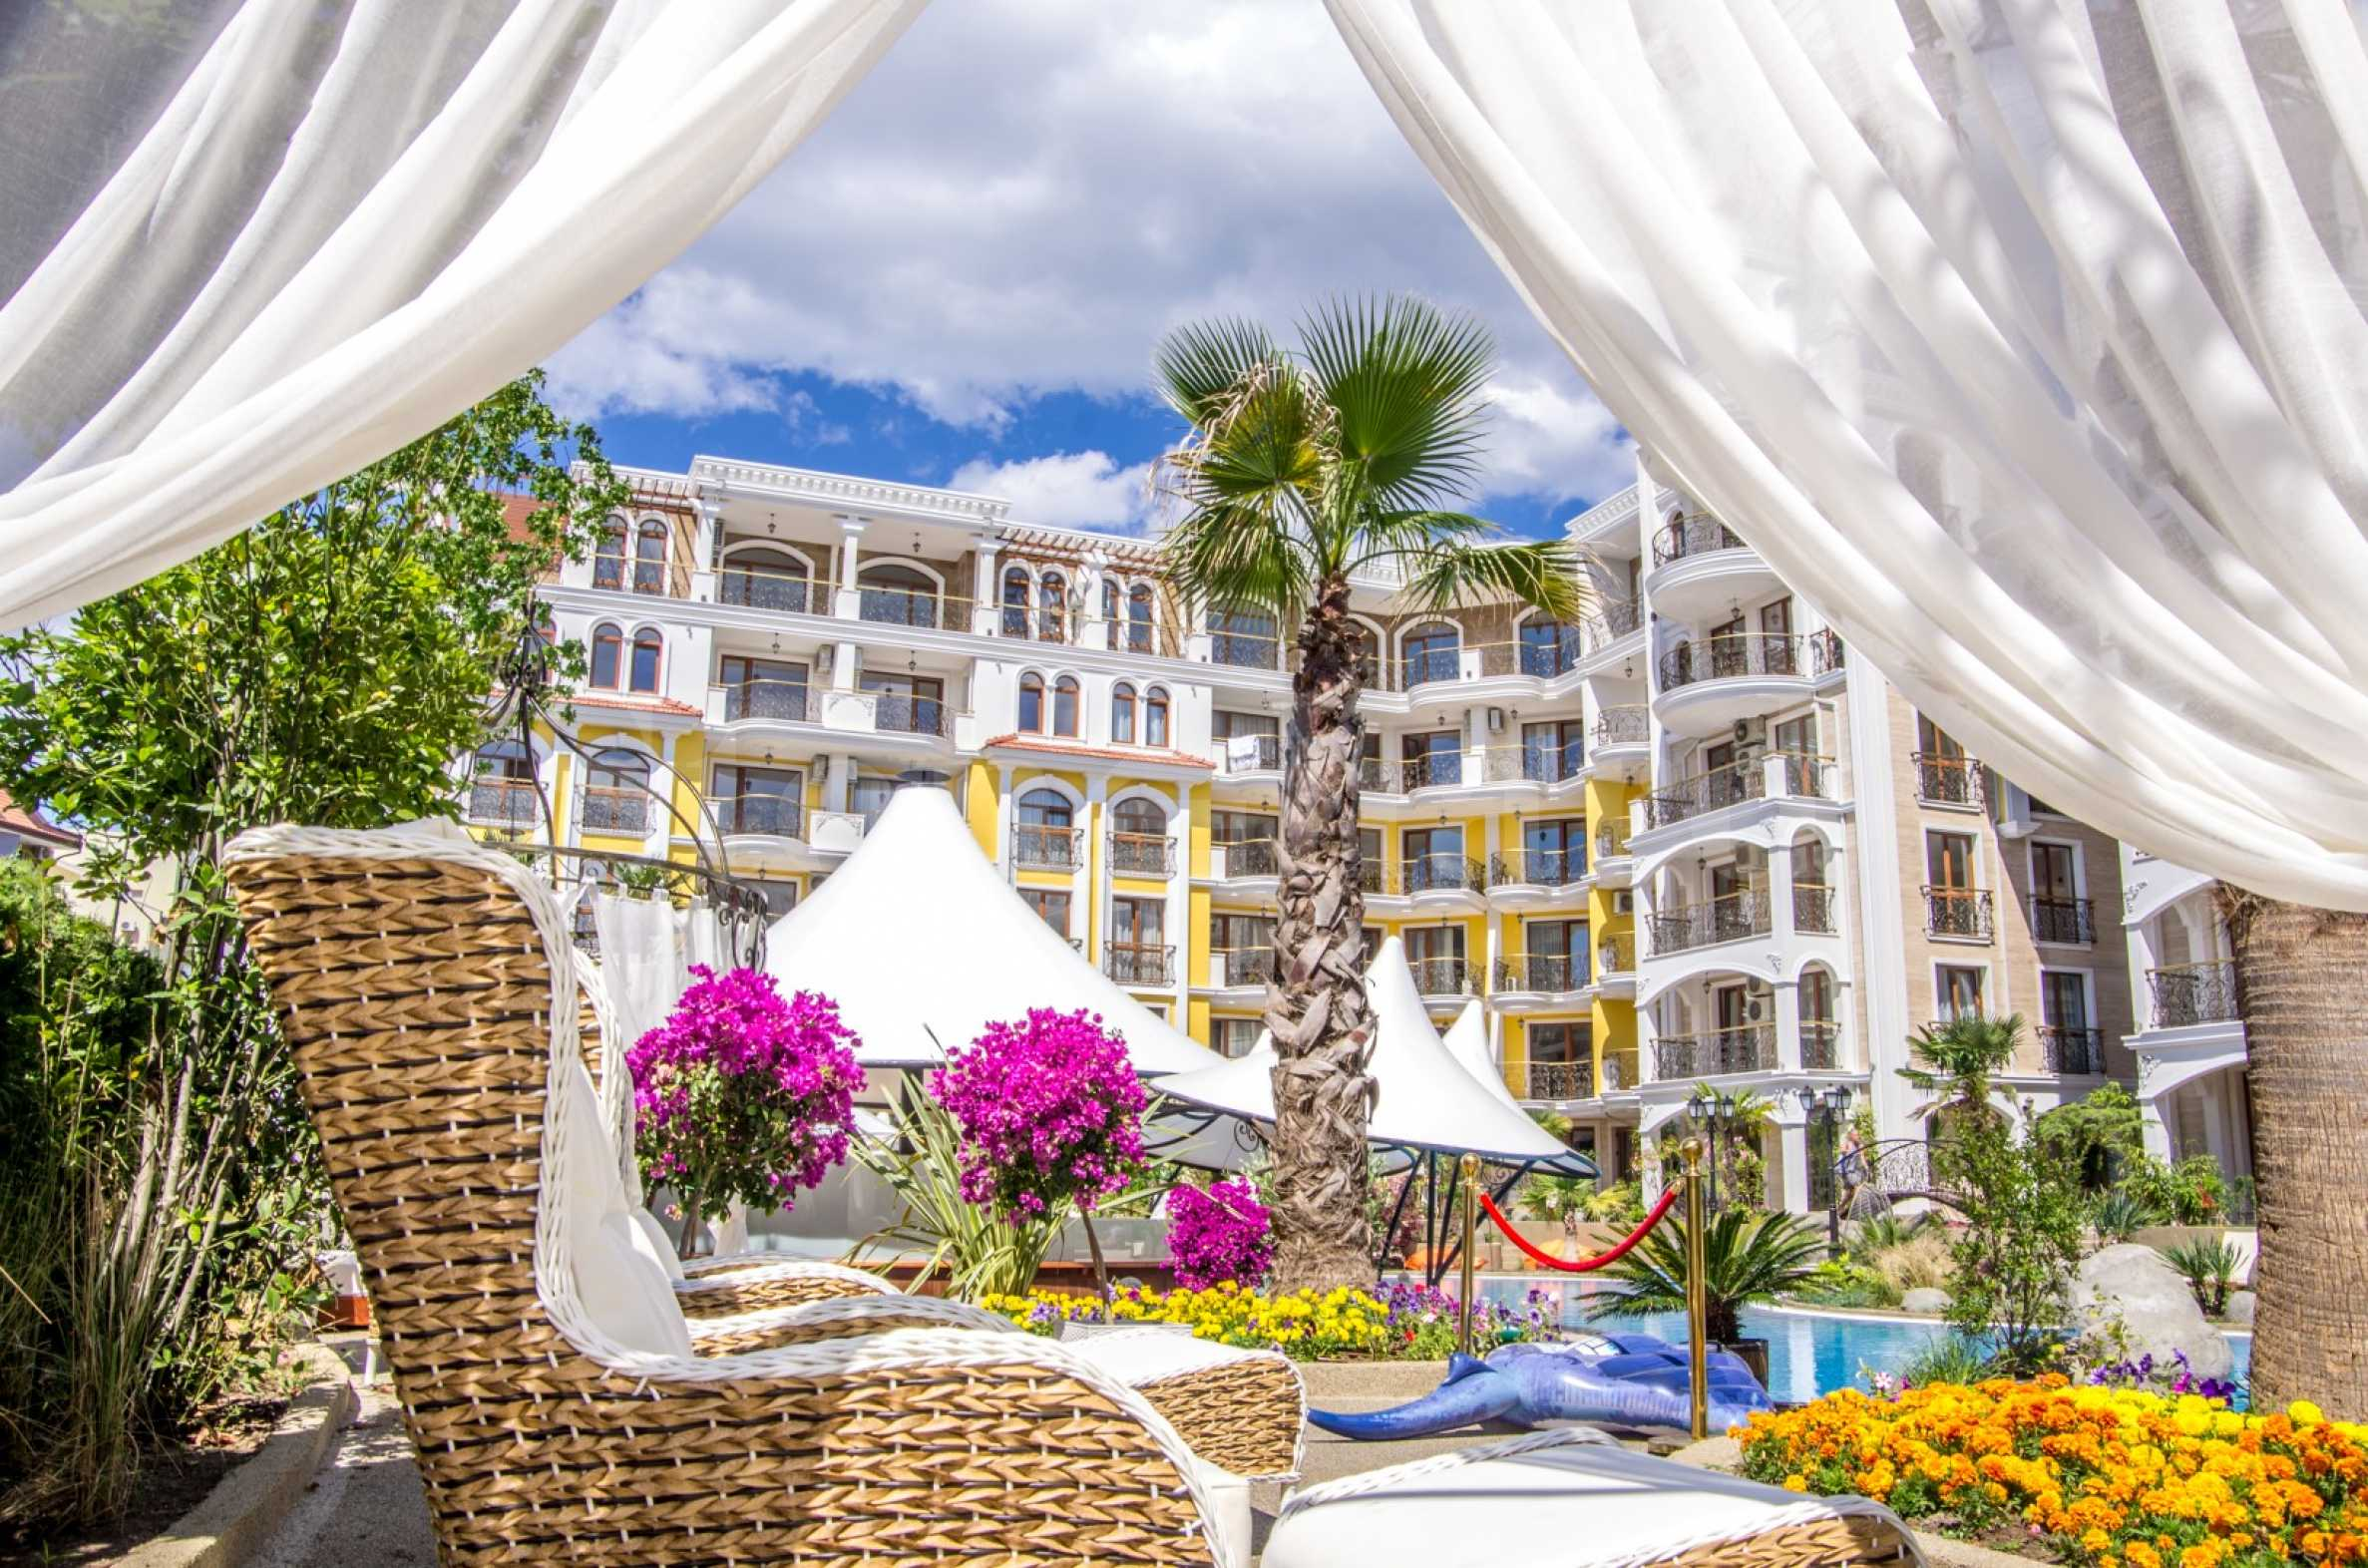 Impressive complex with a luxury Mediterranean style with elite apartments in Sunny Beach1 - Stonehard